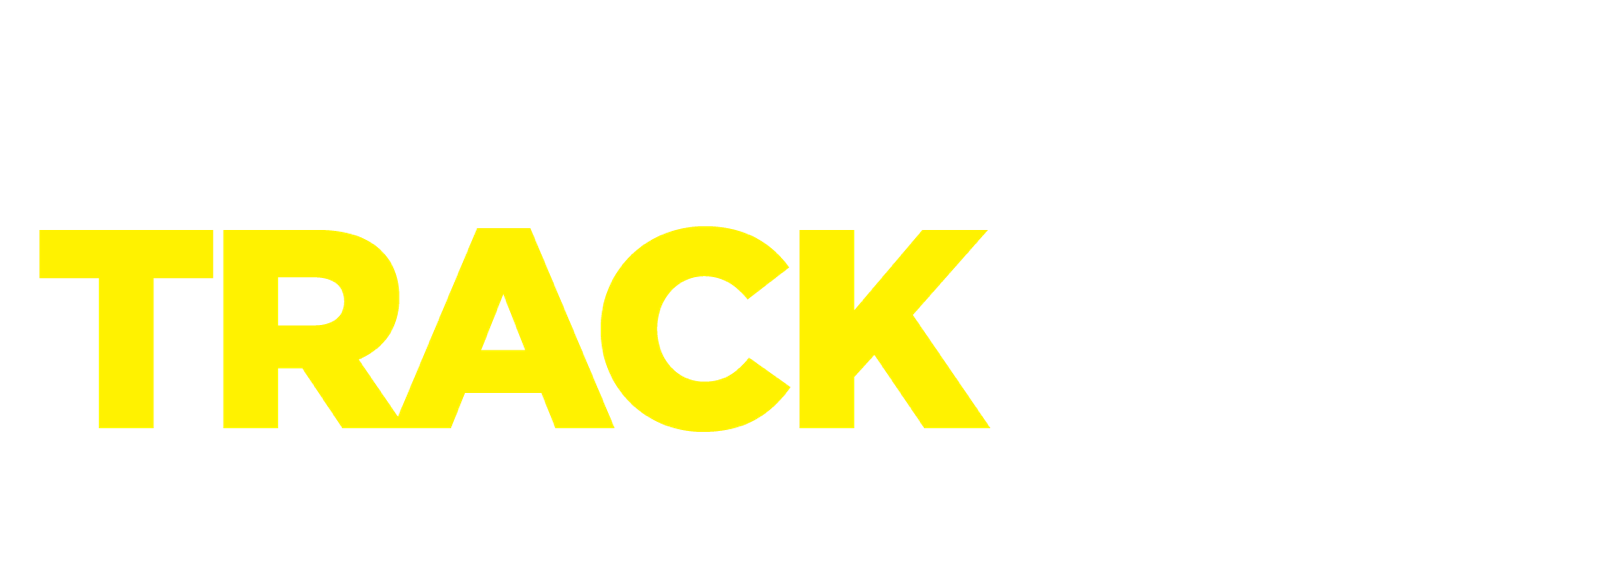 TrackLab Performance BodyCare copy-1.png